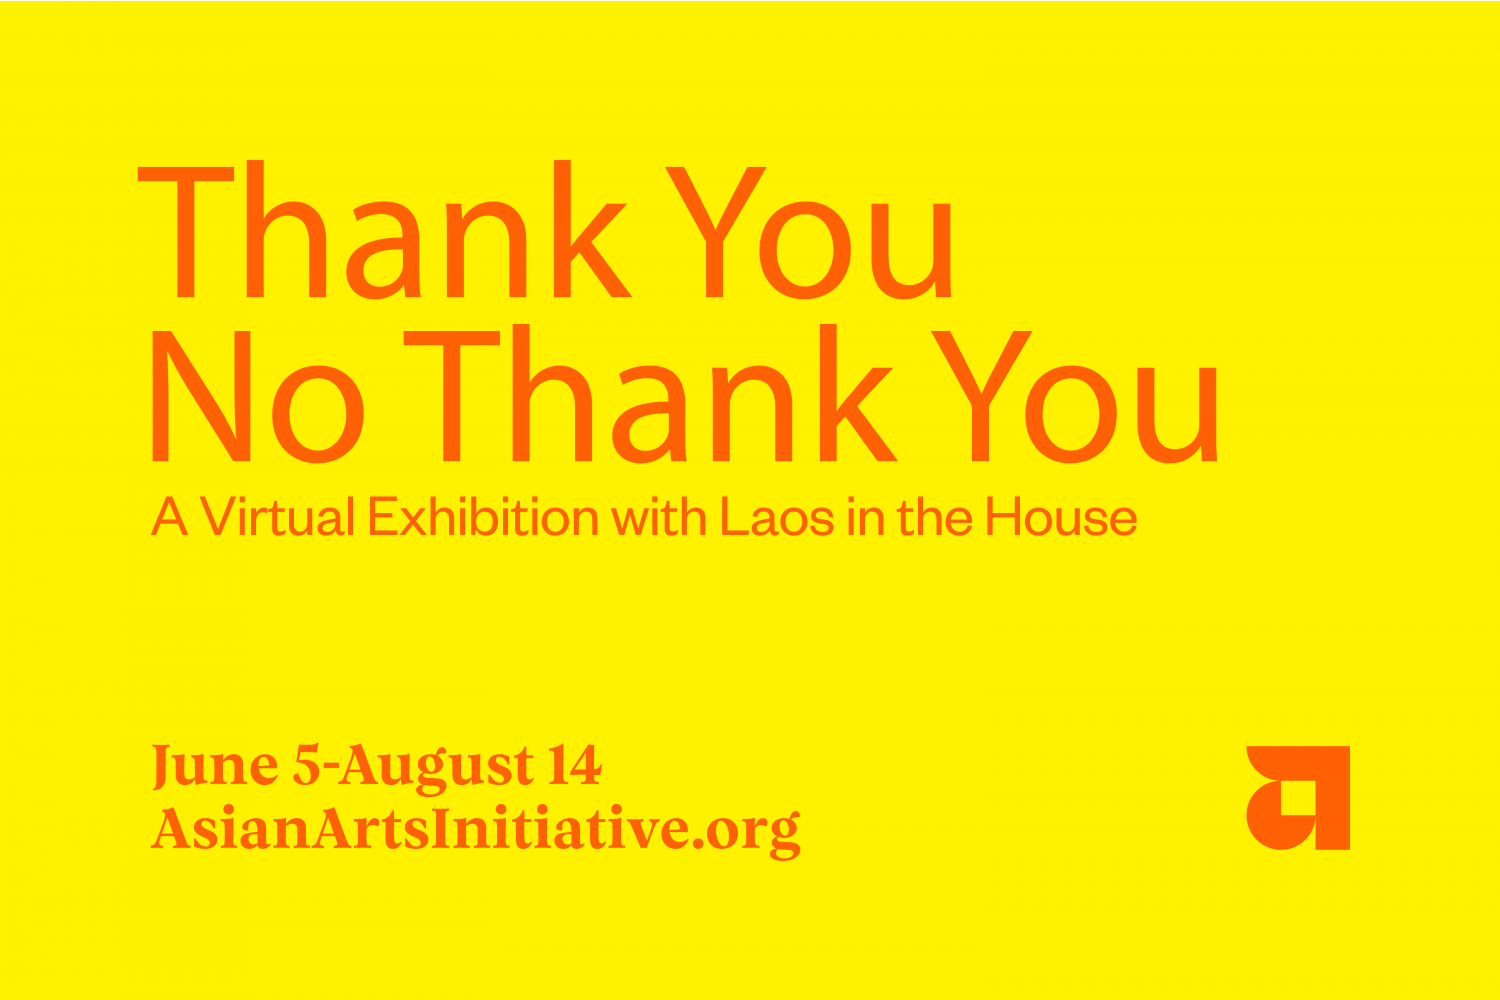 Thank You No Thank You - A Virtual Exhibition with Laos in the House